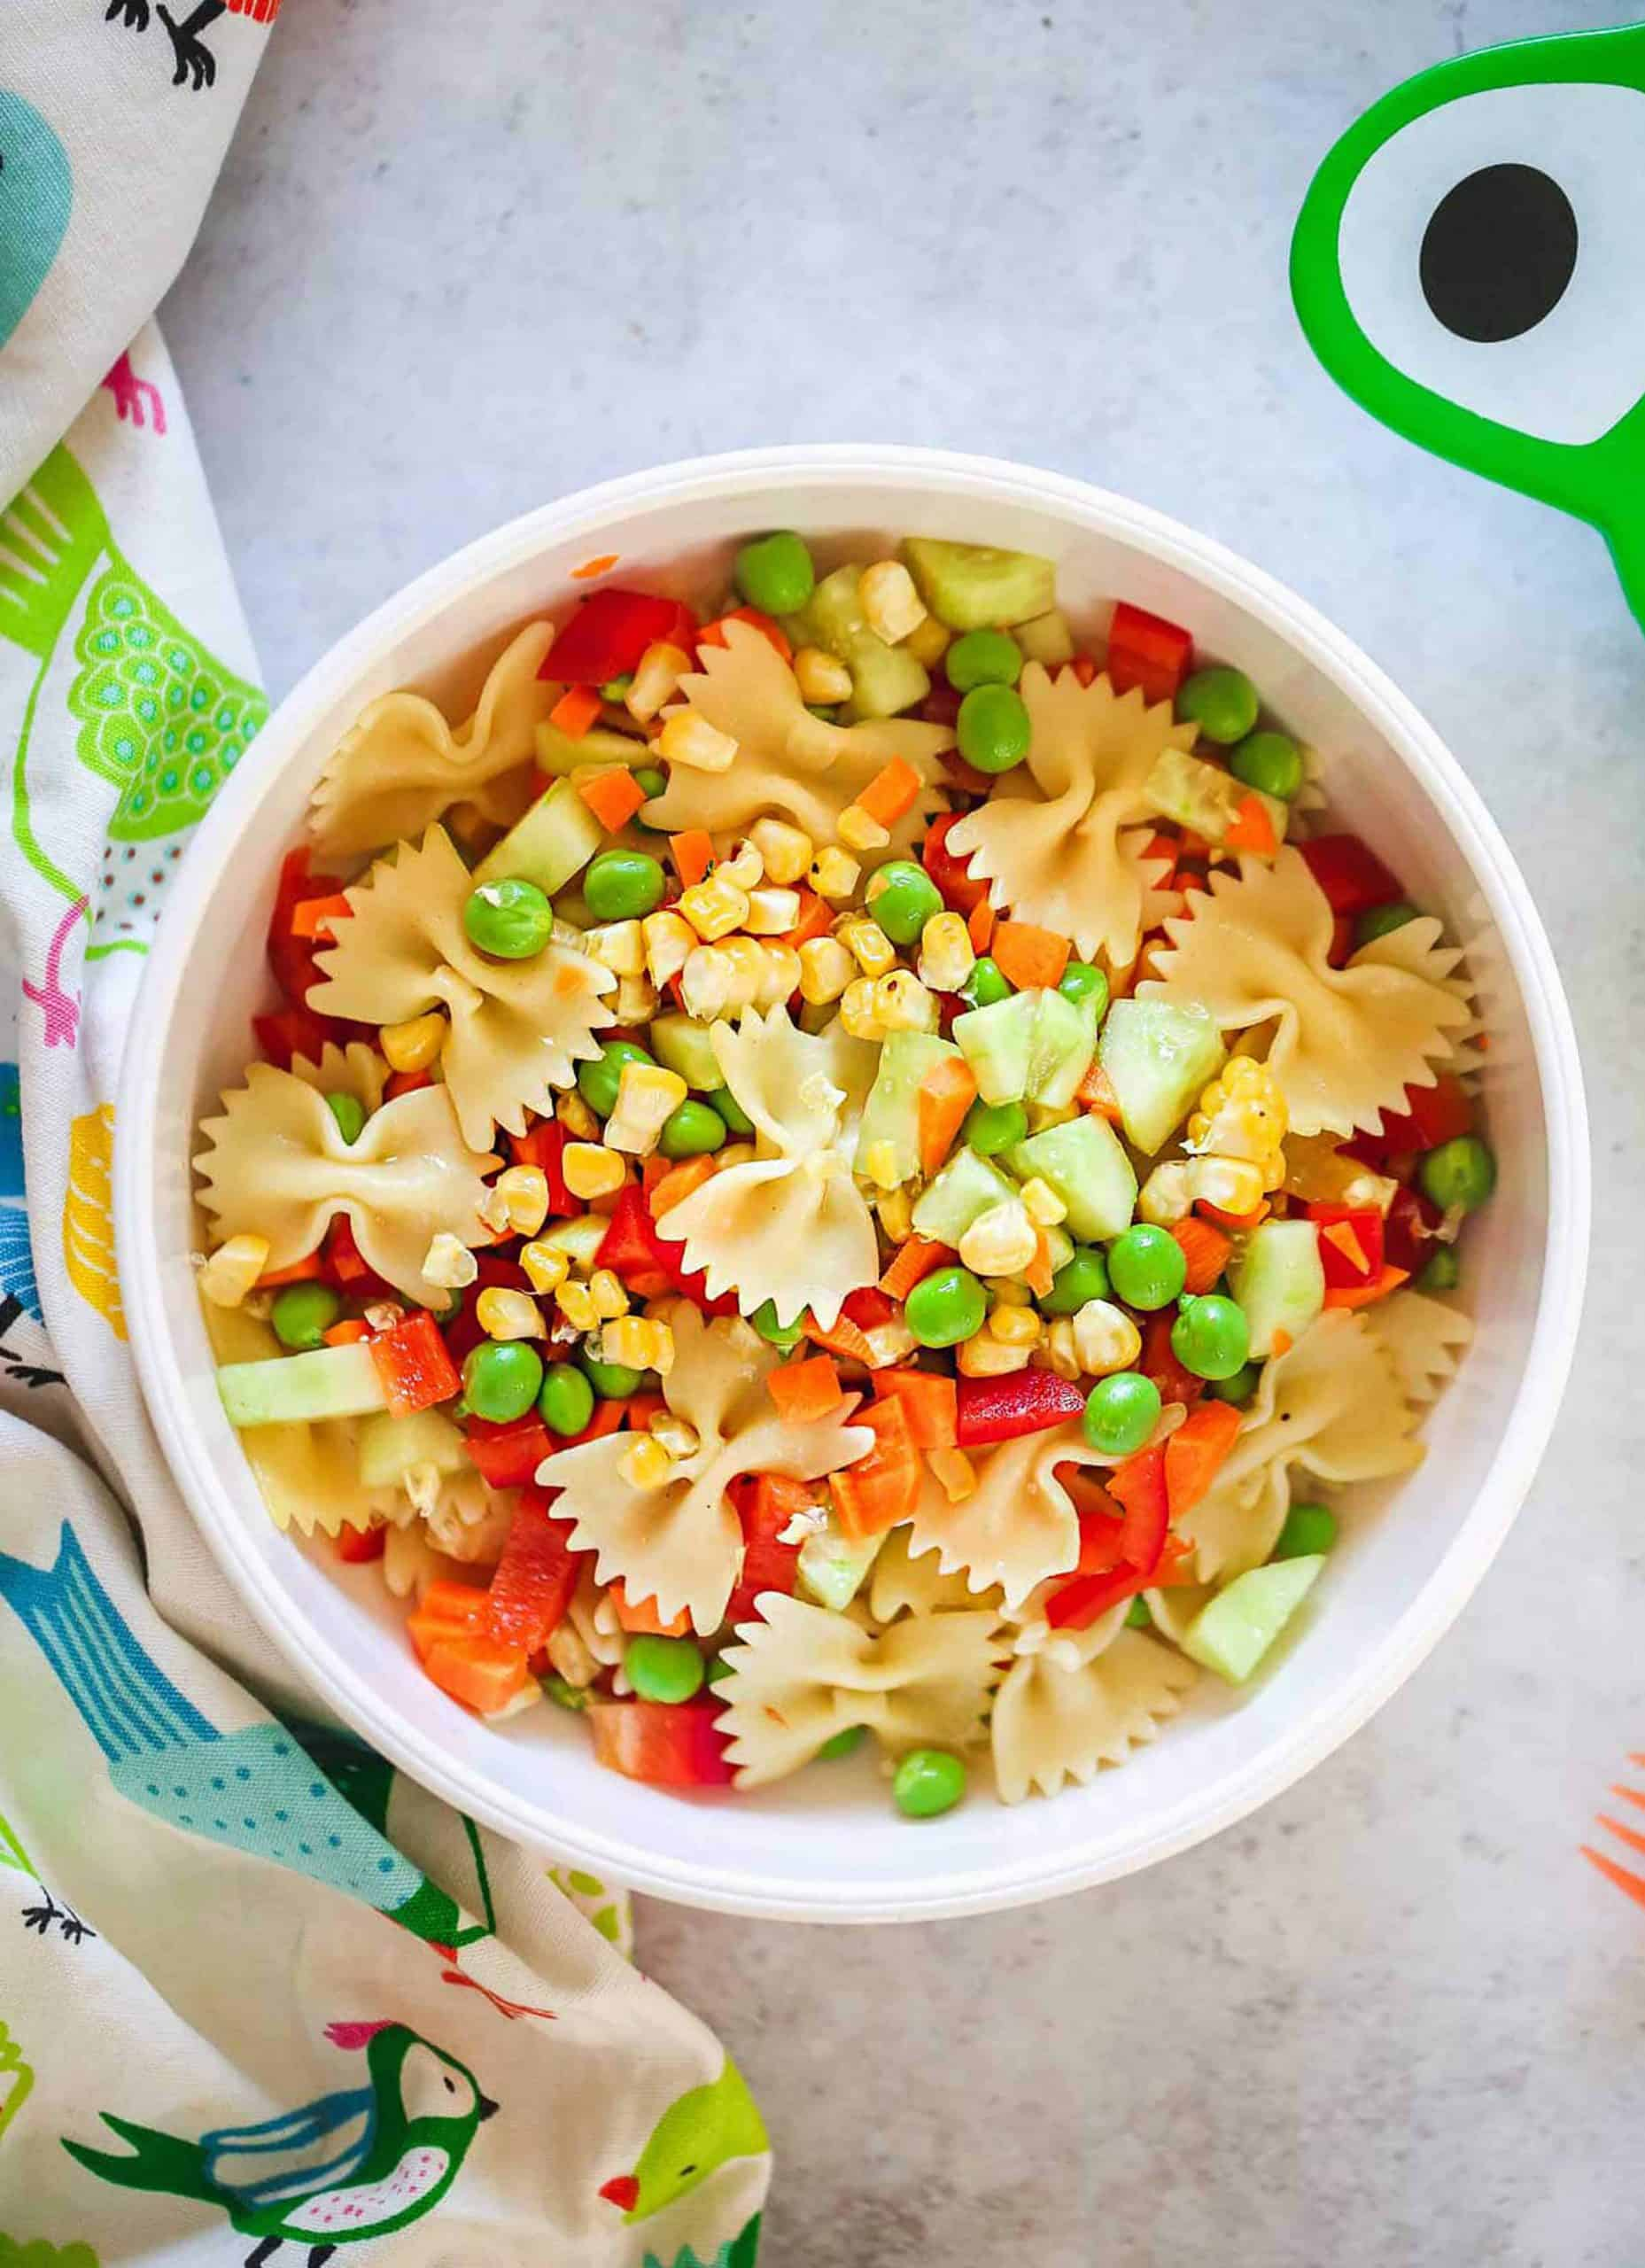 Top view of a white bowl full of pasta, peas and diced vegetables - Little Sunny Kitchen.